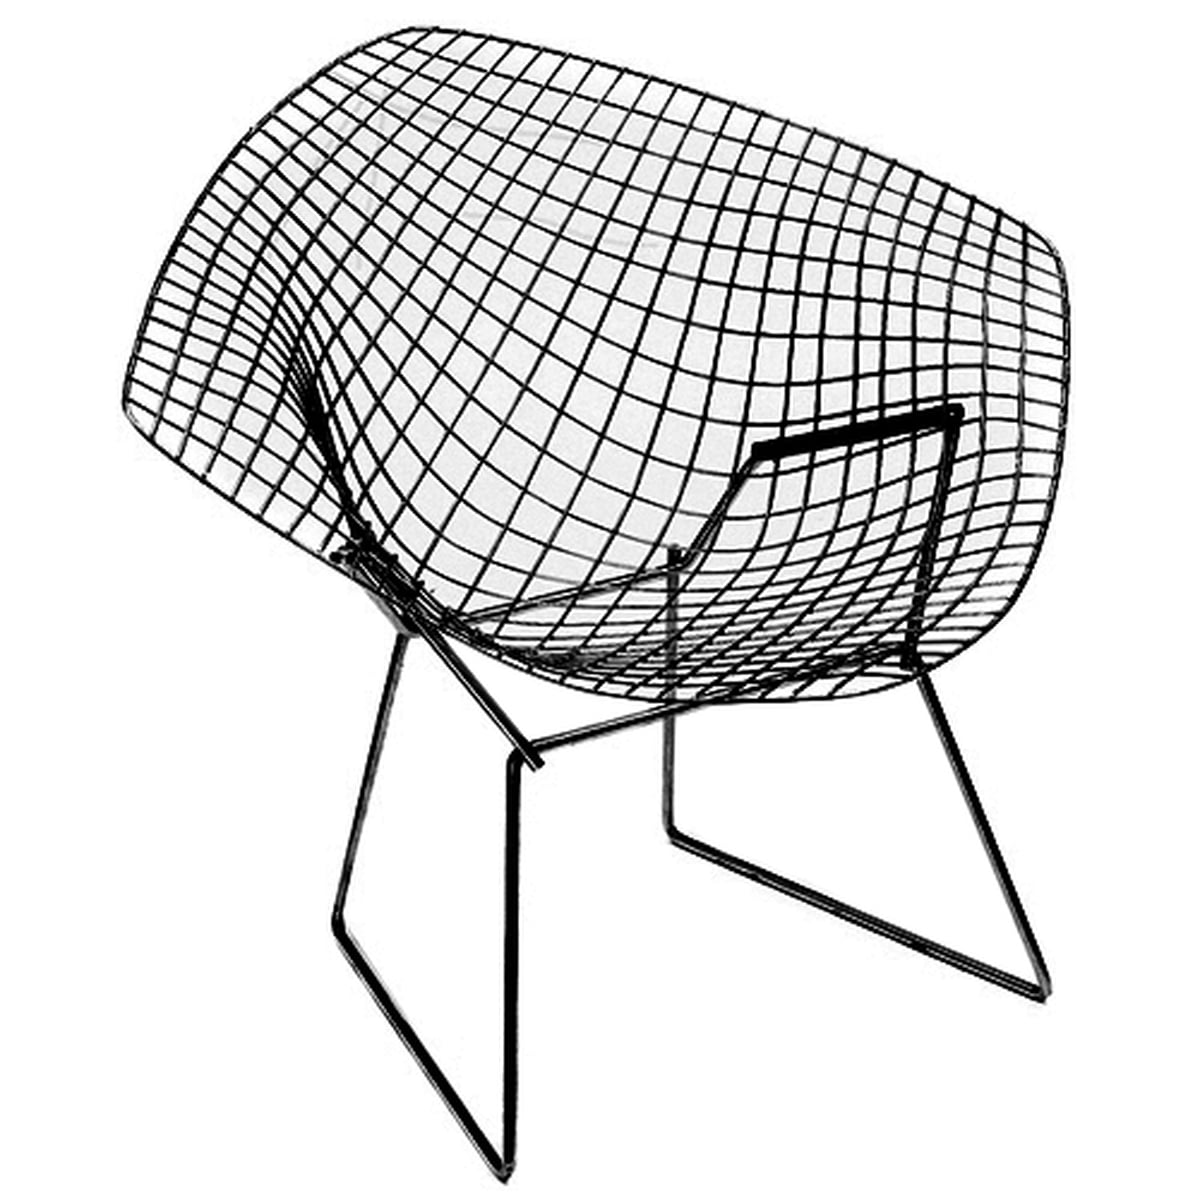 studio side chair nest at platner the chairs co knoll buy in sand uk product